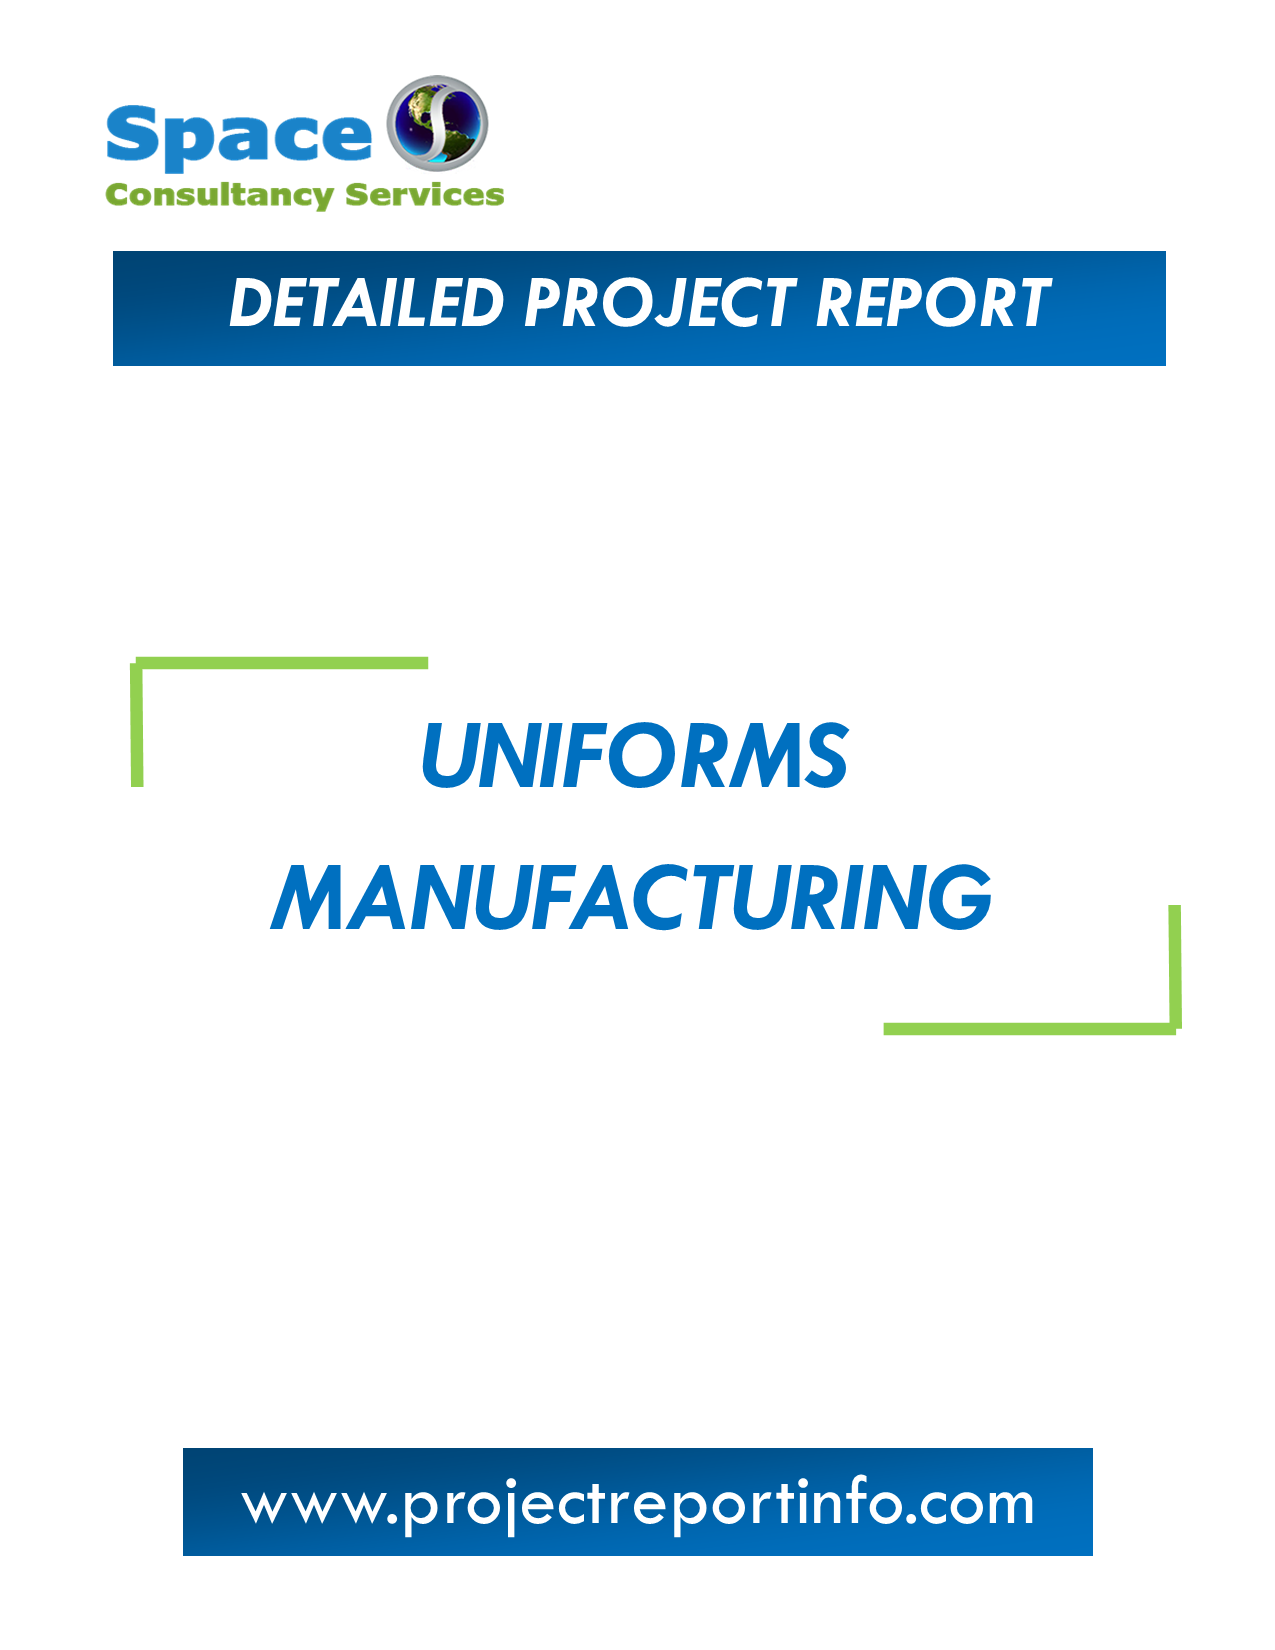 Project Report on Uniforms Manufacturing